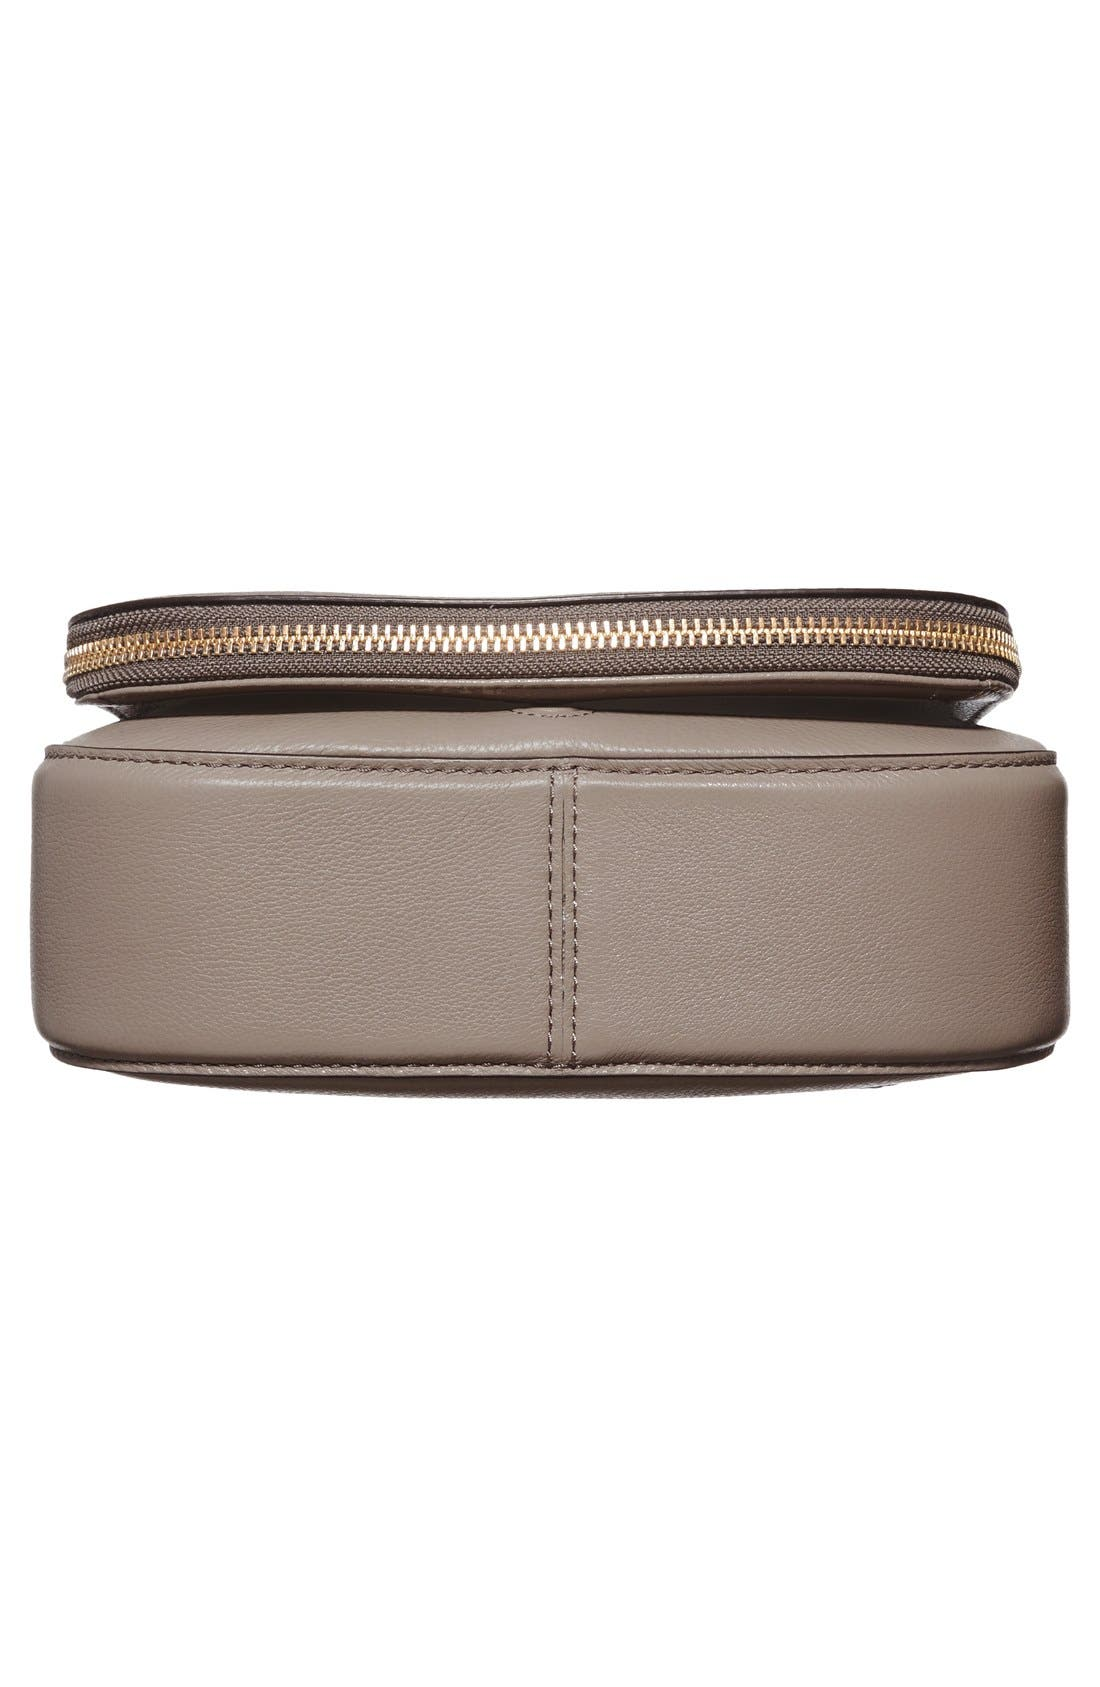 Small Recruit Nomad Pebbled Leather Crossbody Bag,                             Alternate thumbnail 61, color,